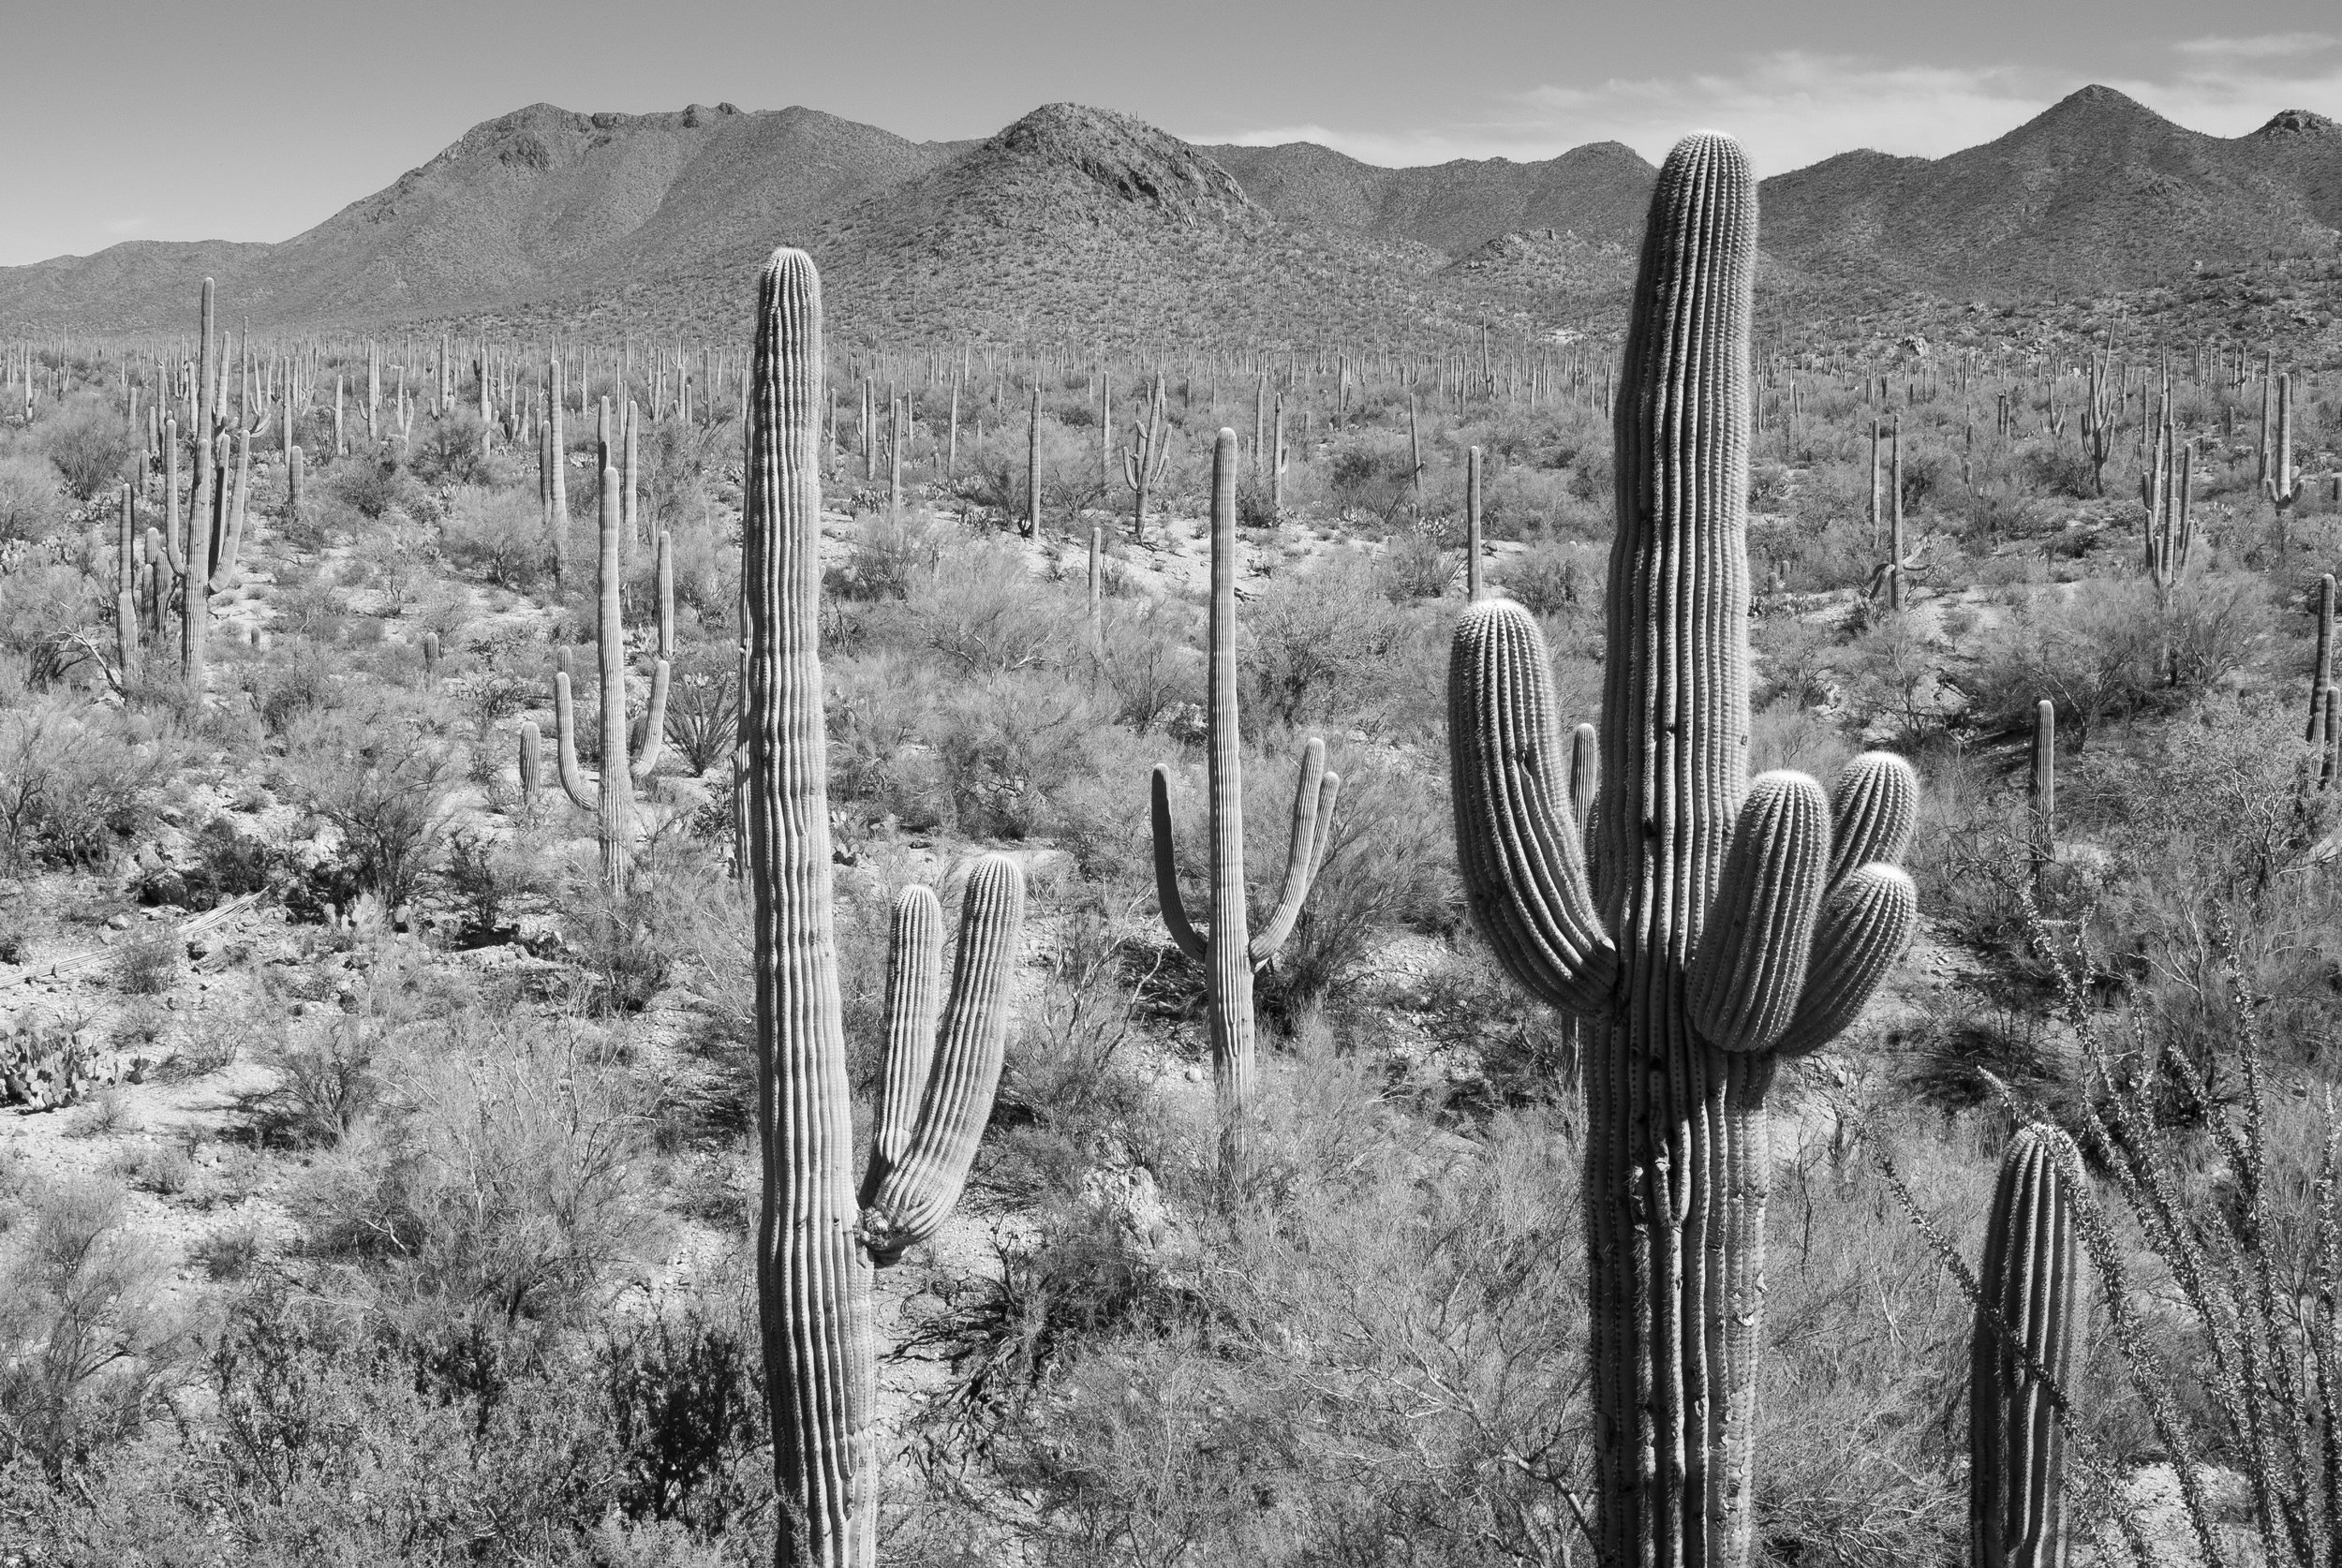 Saguaro National Park, Arizona, 2018